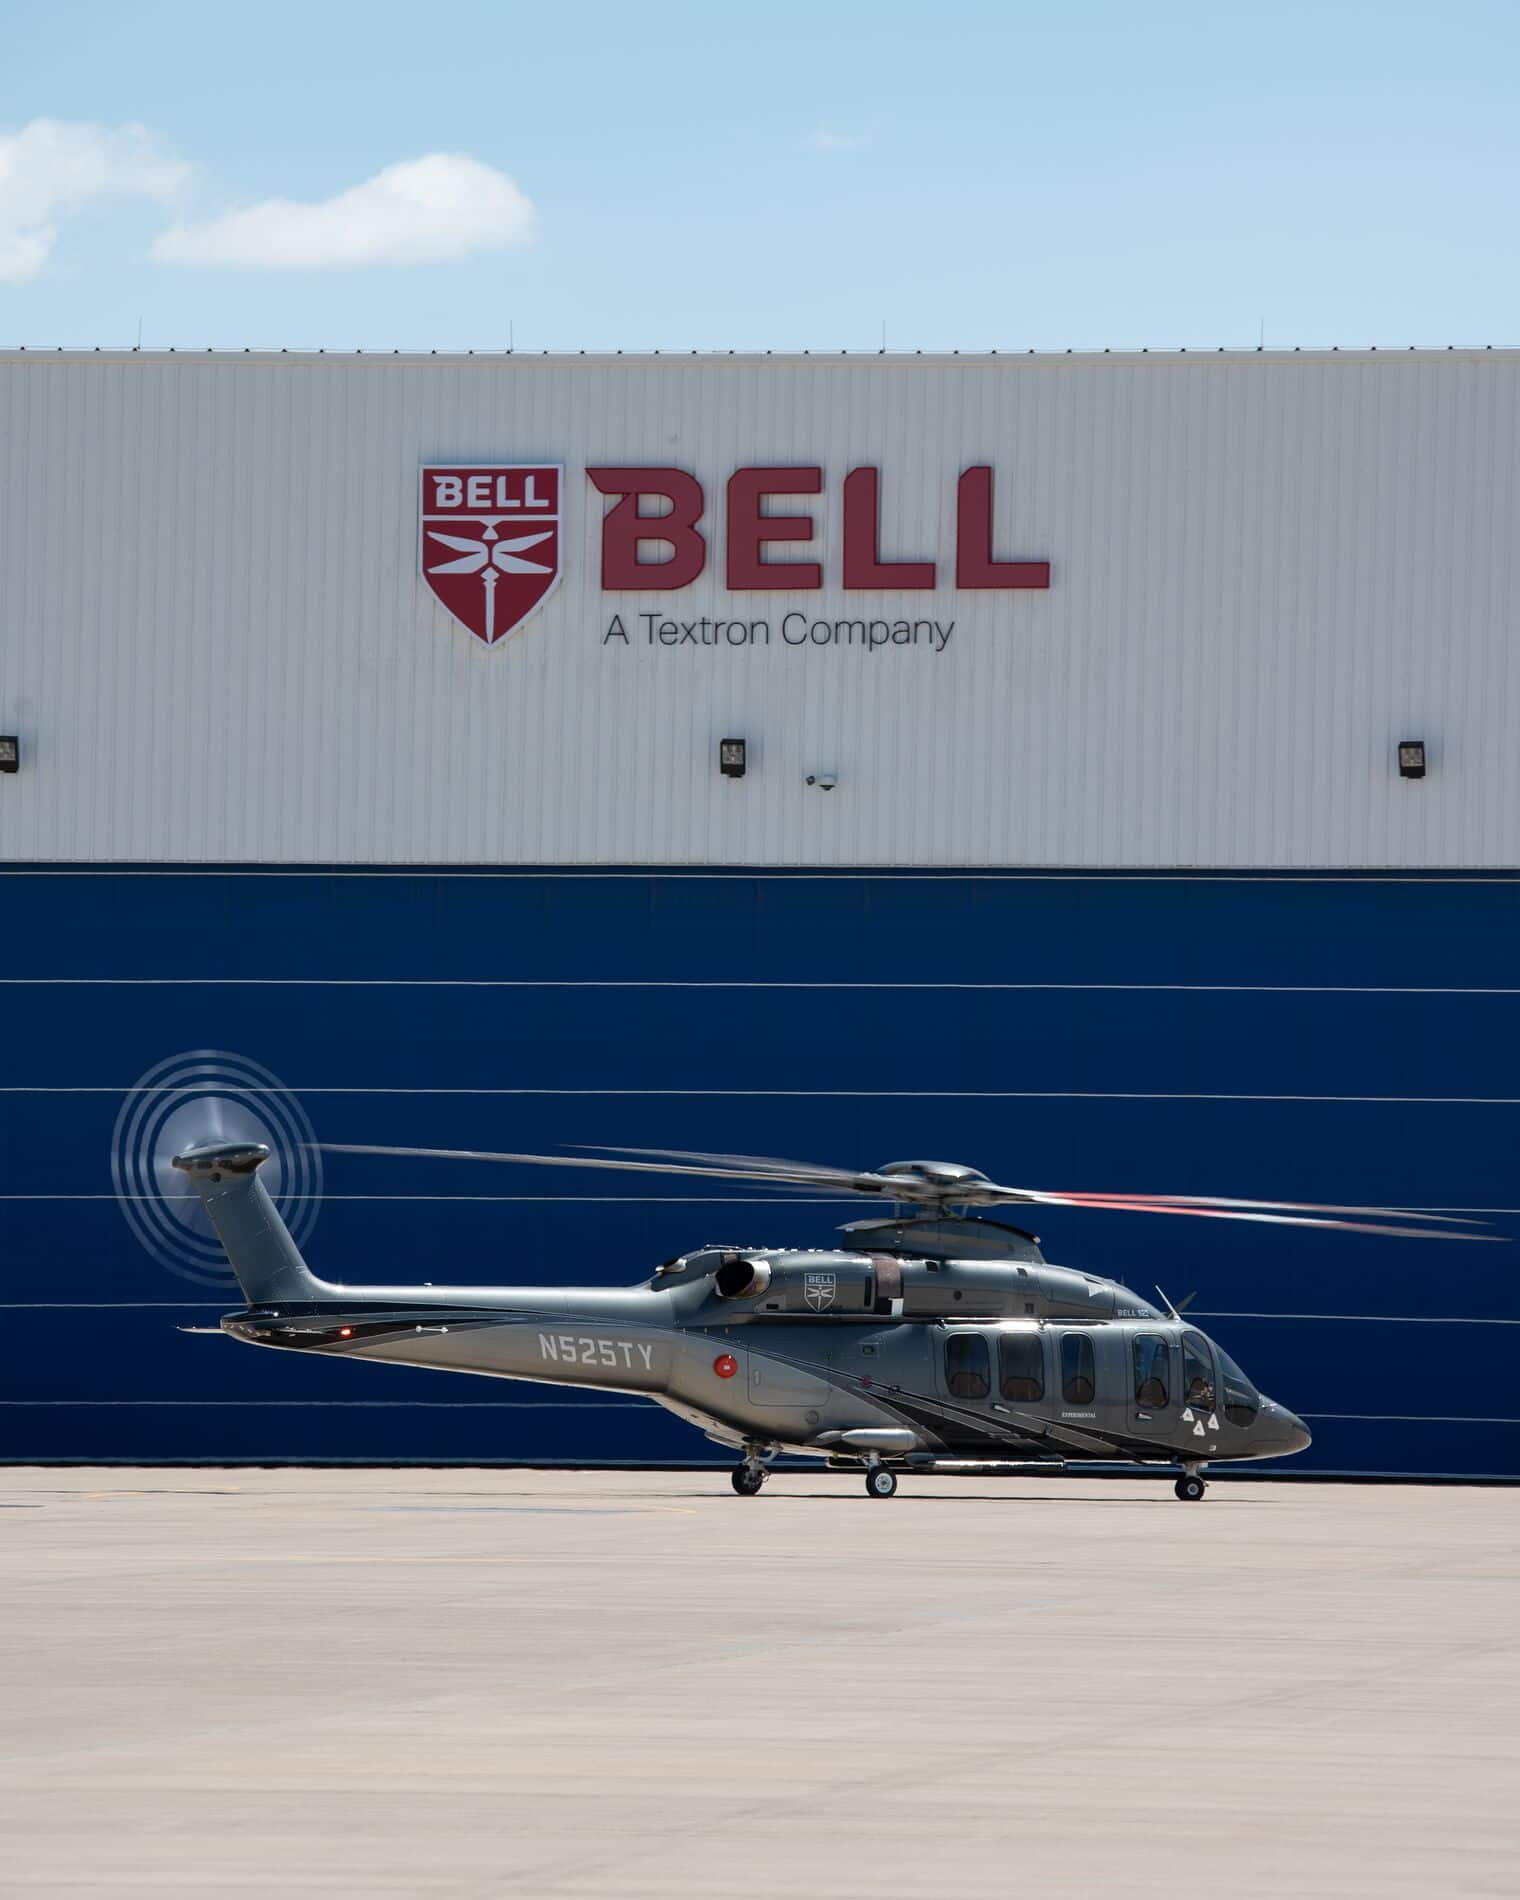 Bell 525 landed at Bell